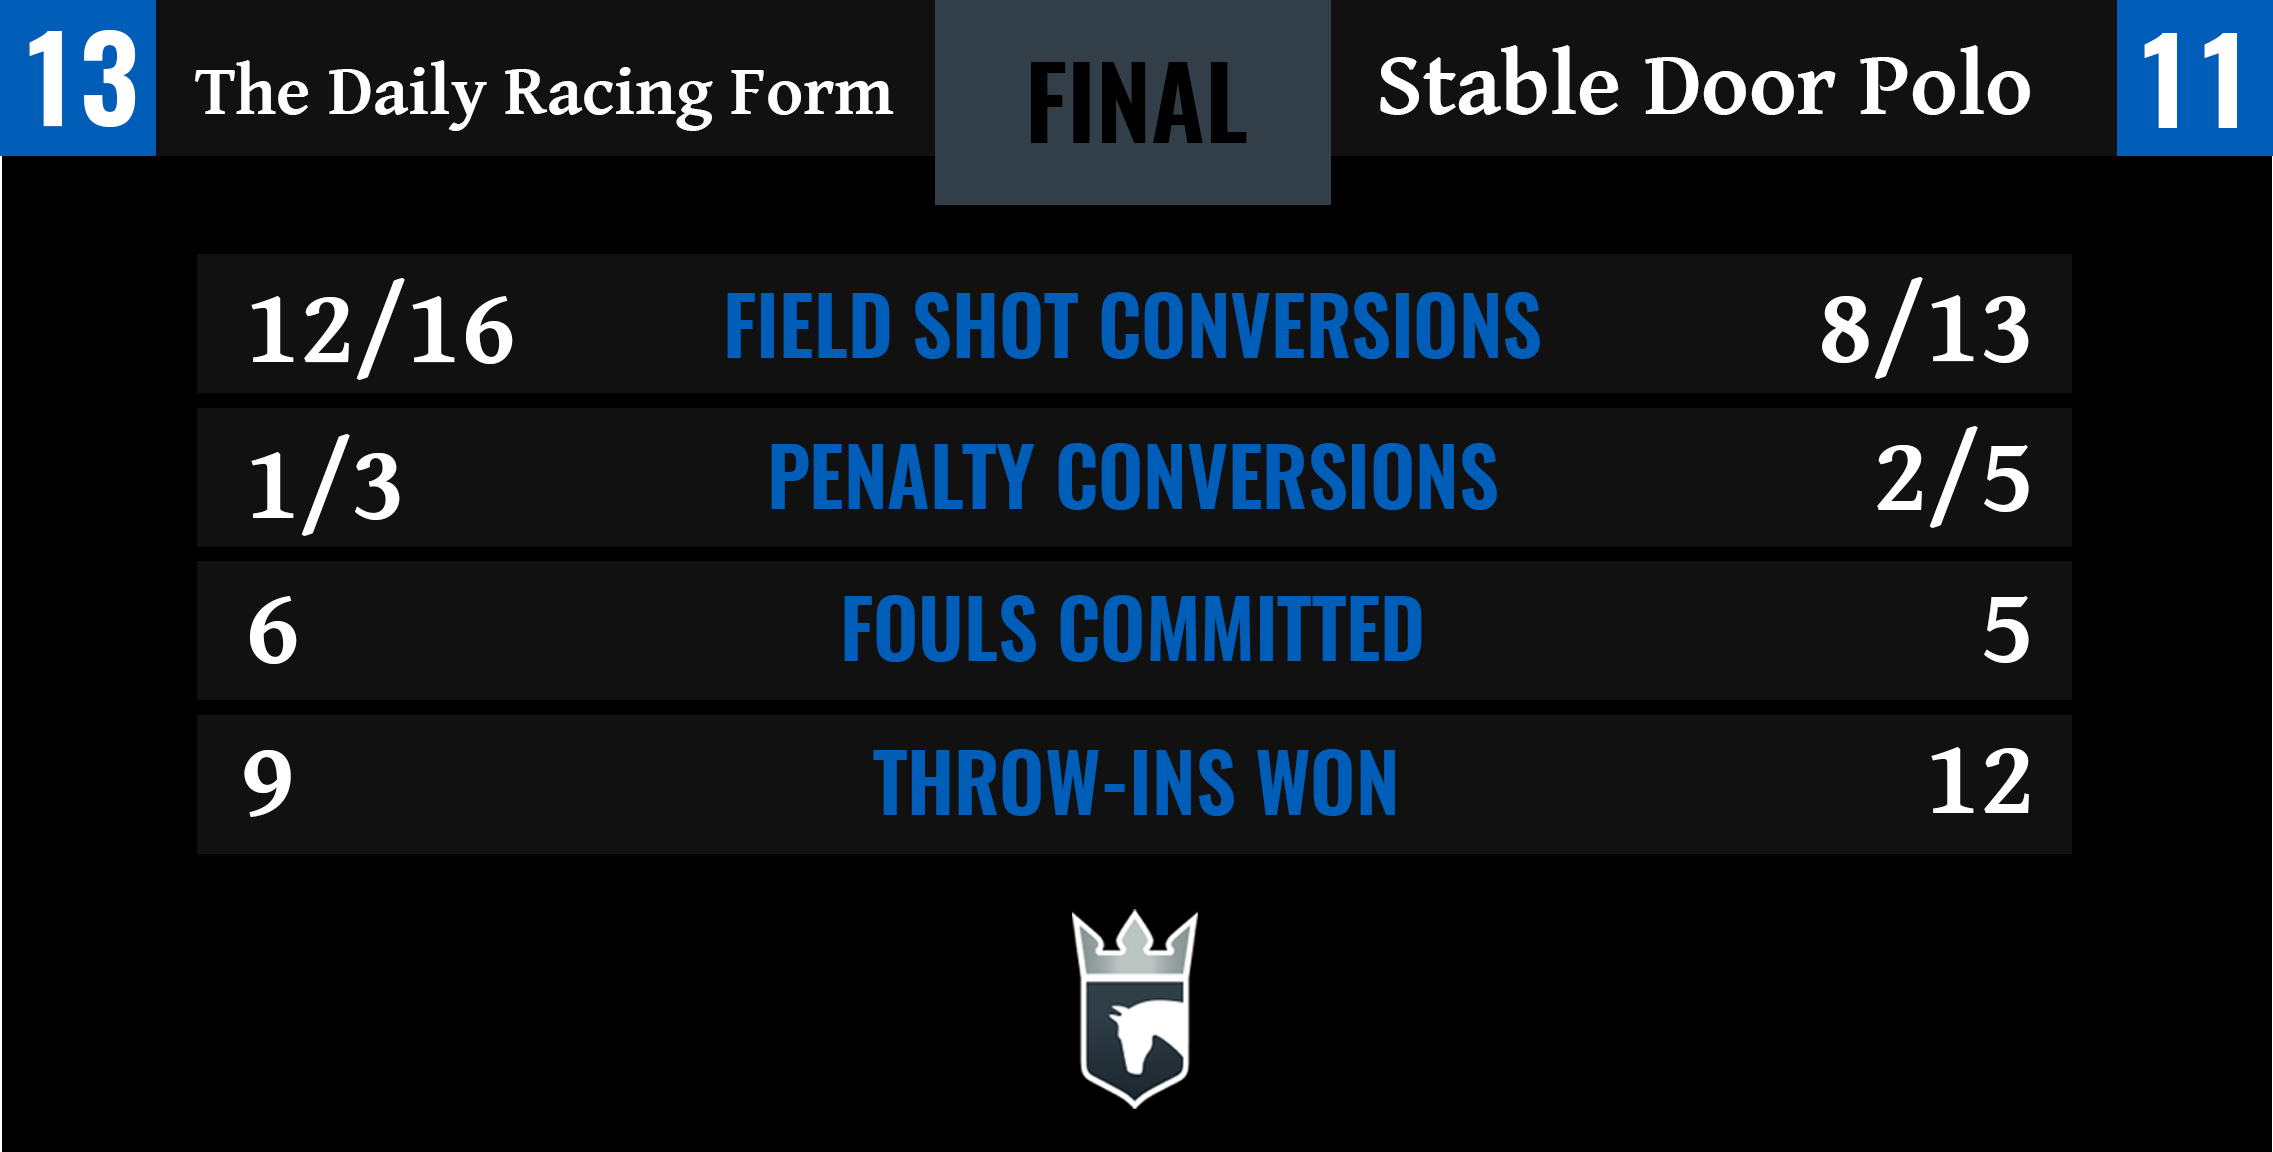 The Daily Racing Form vs Stable Door Polo Final Stats